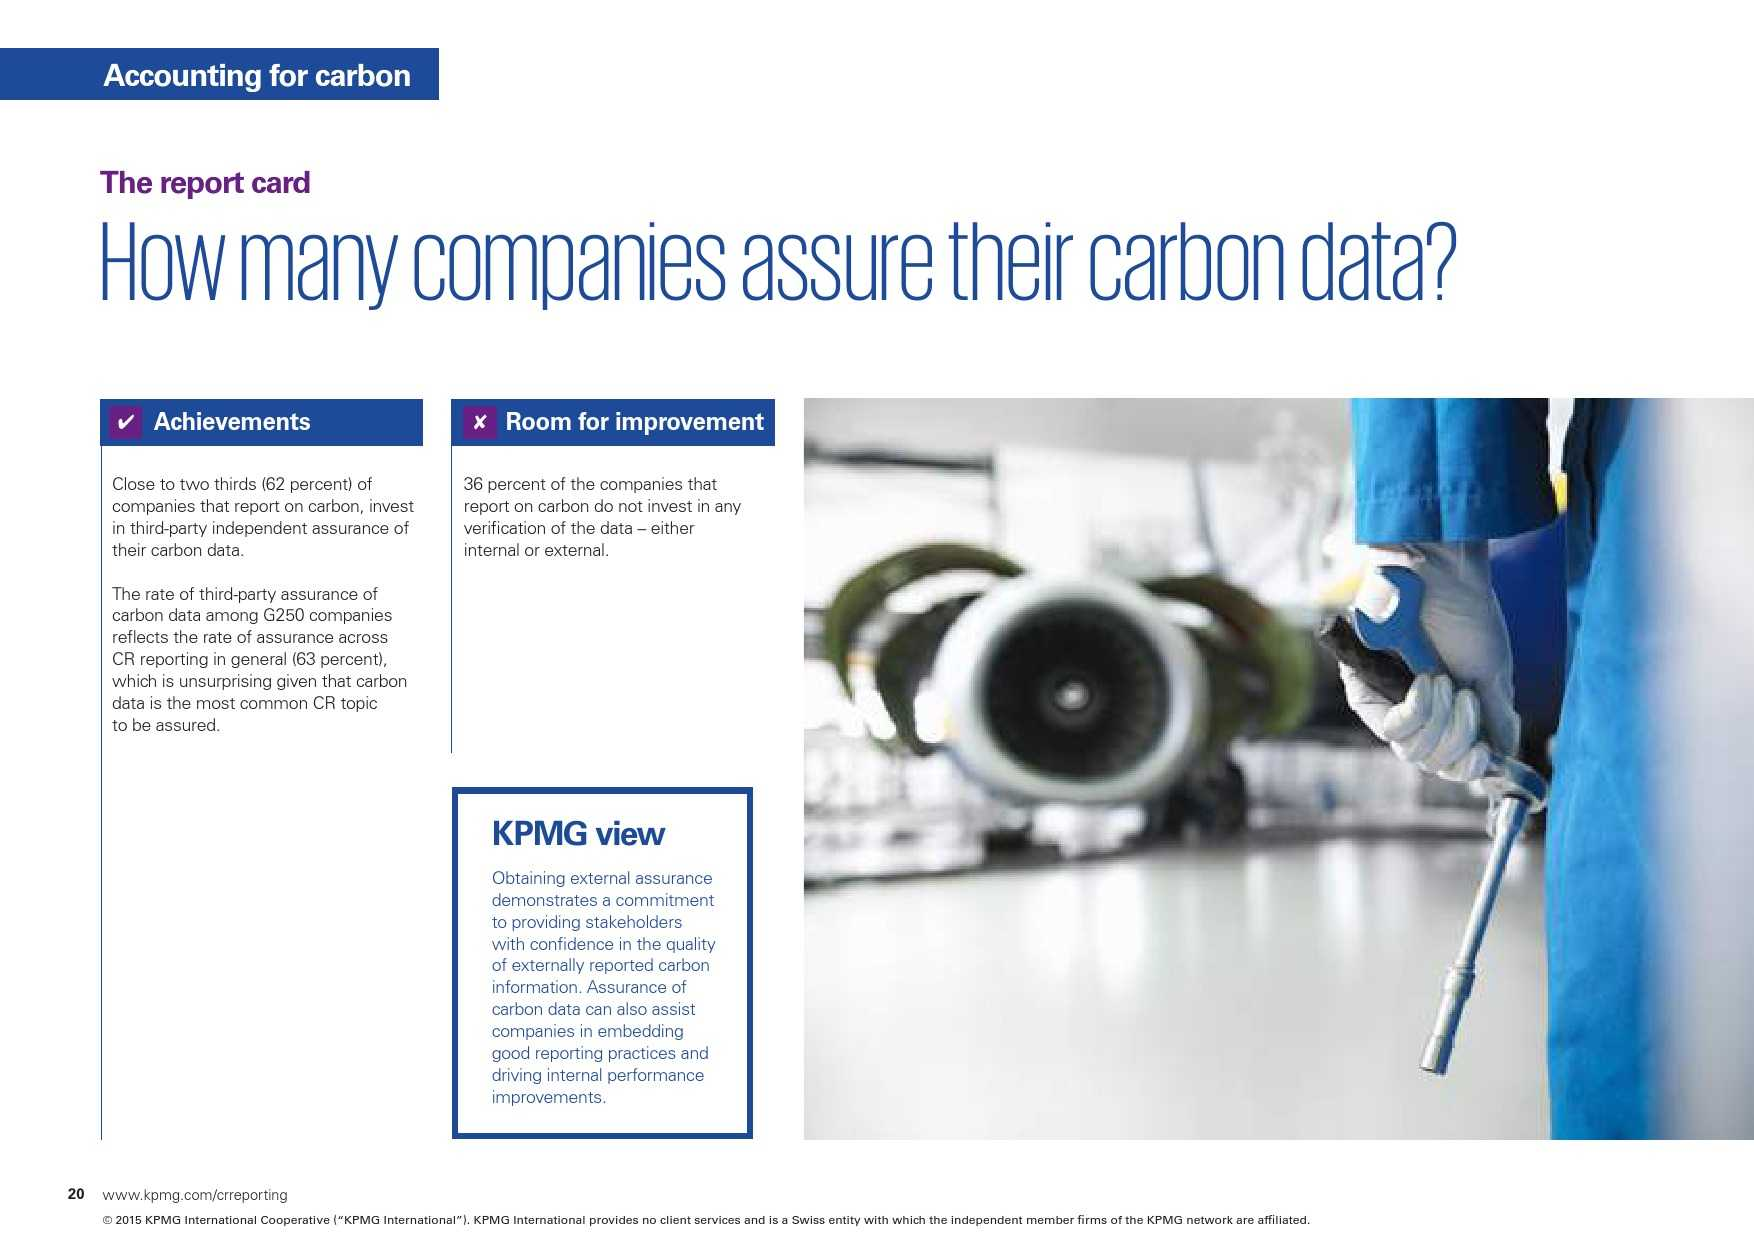 kpmg-international-survey-of-corporate-responsibility-reporting-2015_000020